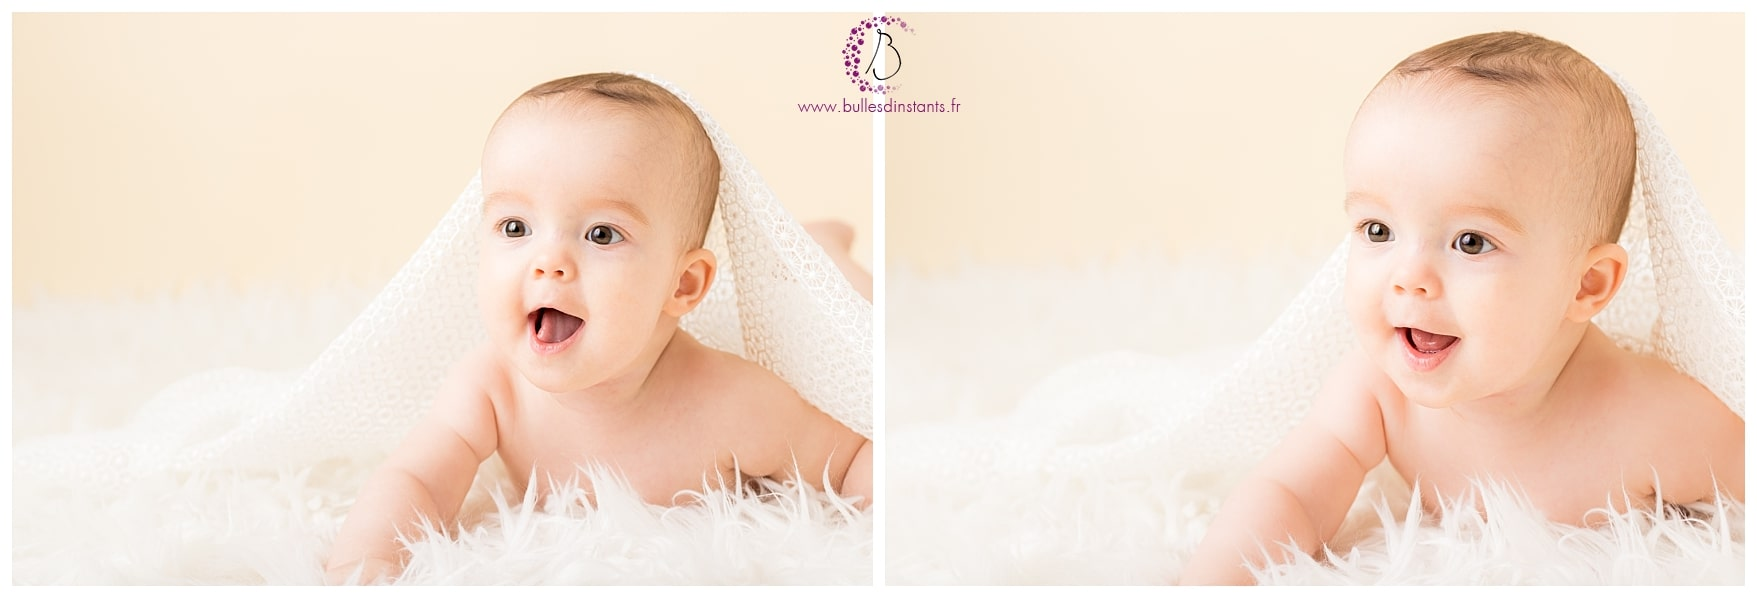 photographe-bebe-naturel-studio-yvelines